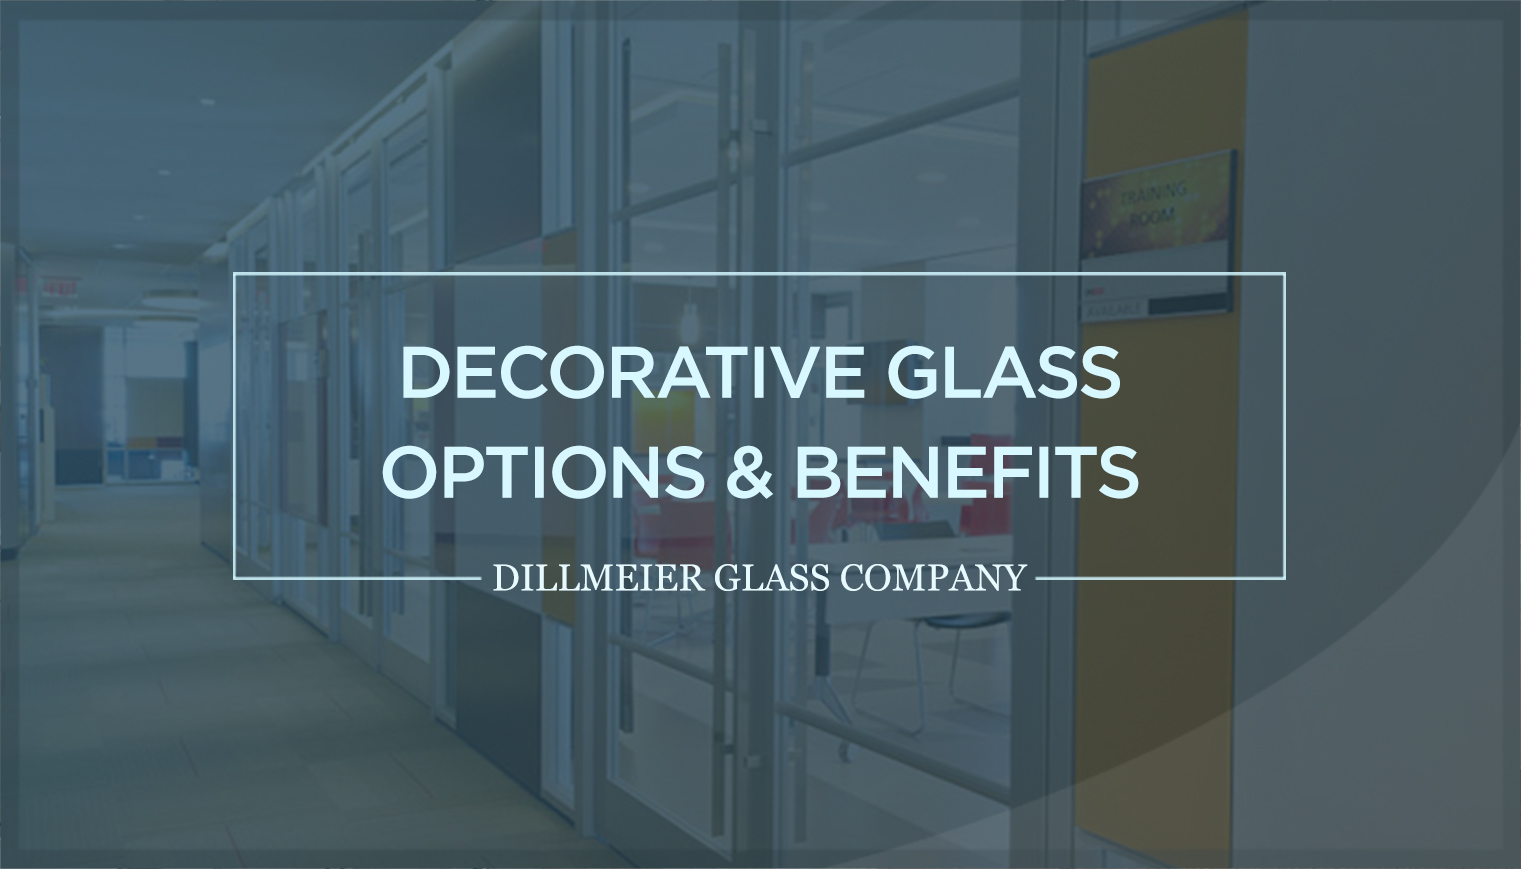 Decorative Glass Options & Benefits